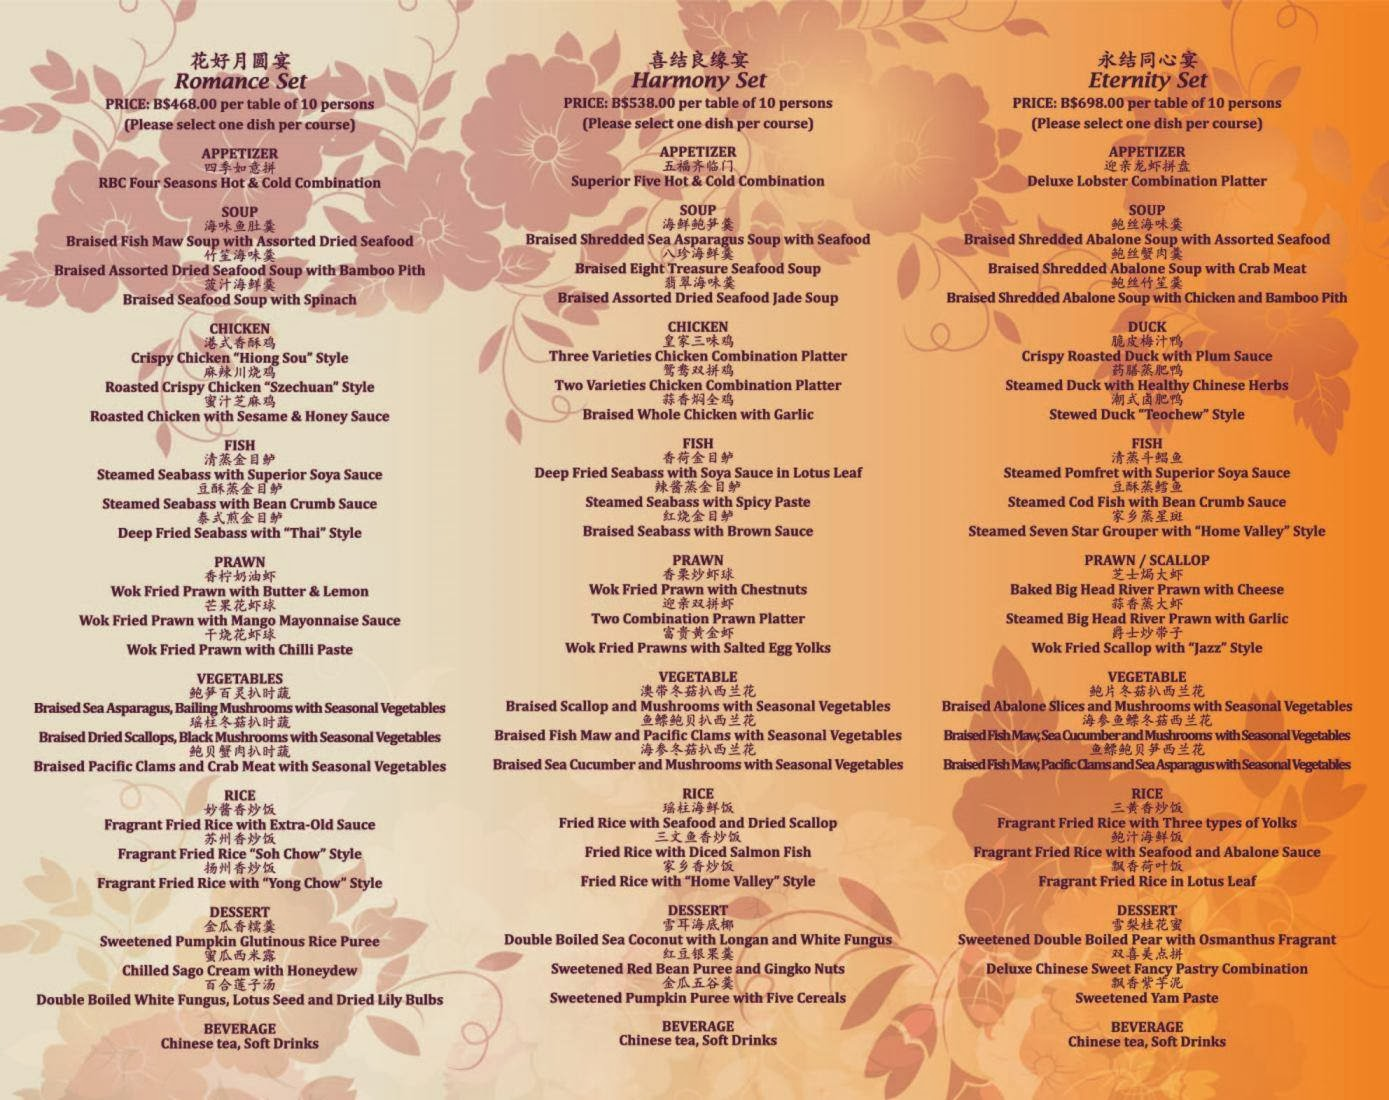 Aszbrunei seasons restaurant introduced chinese wedding for Table 52 restaurant week menu 2013